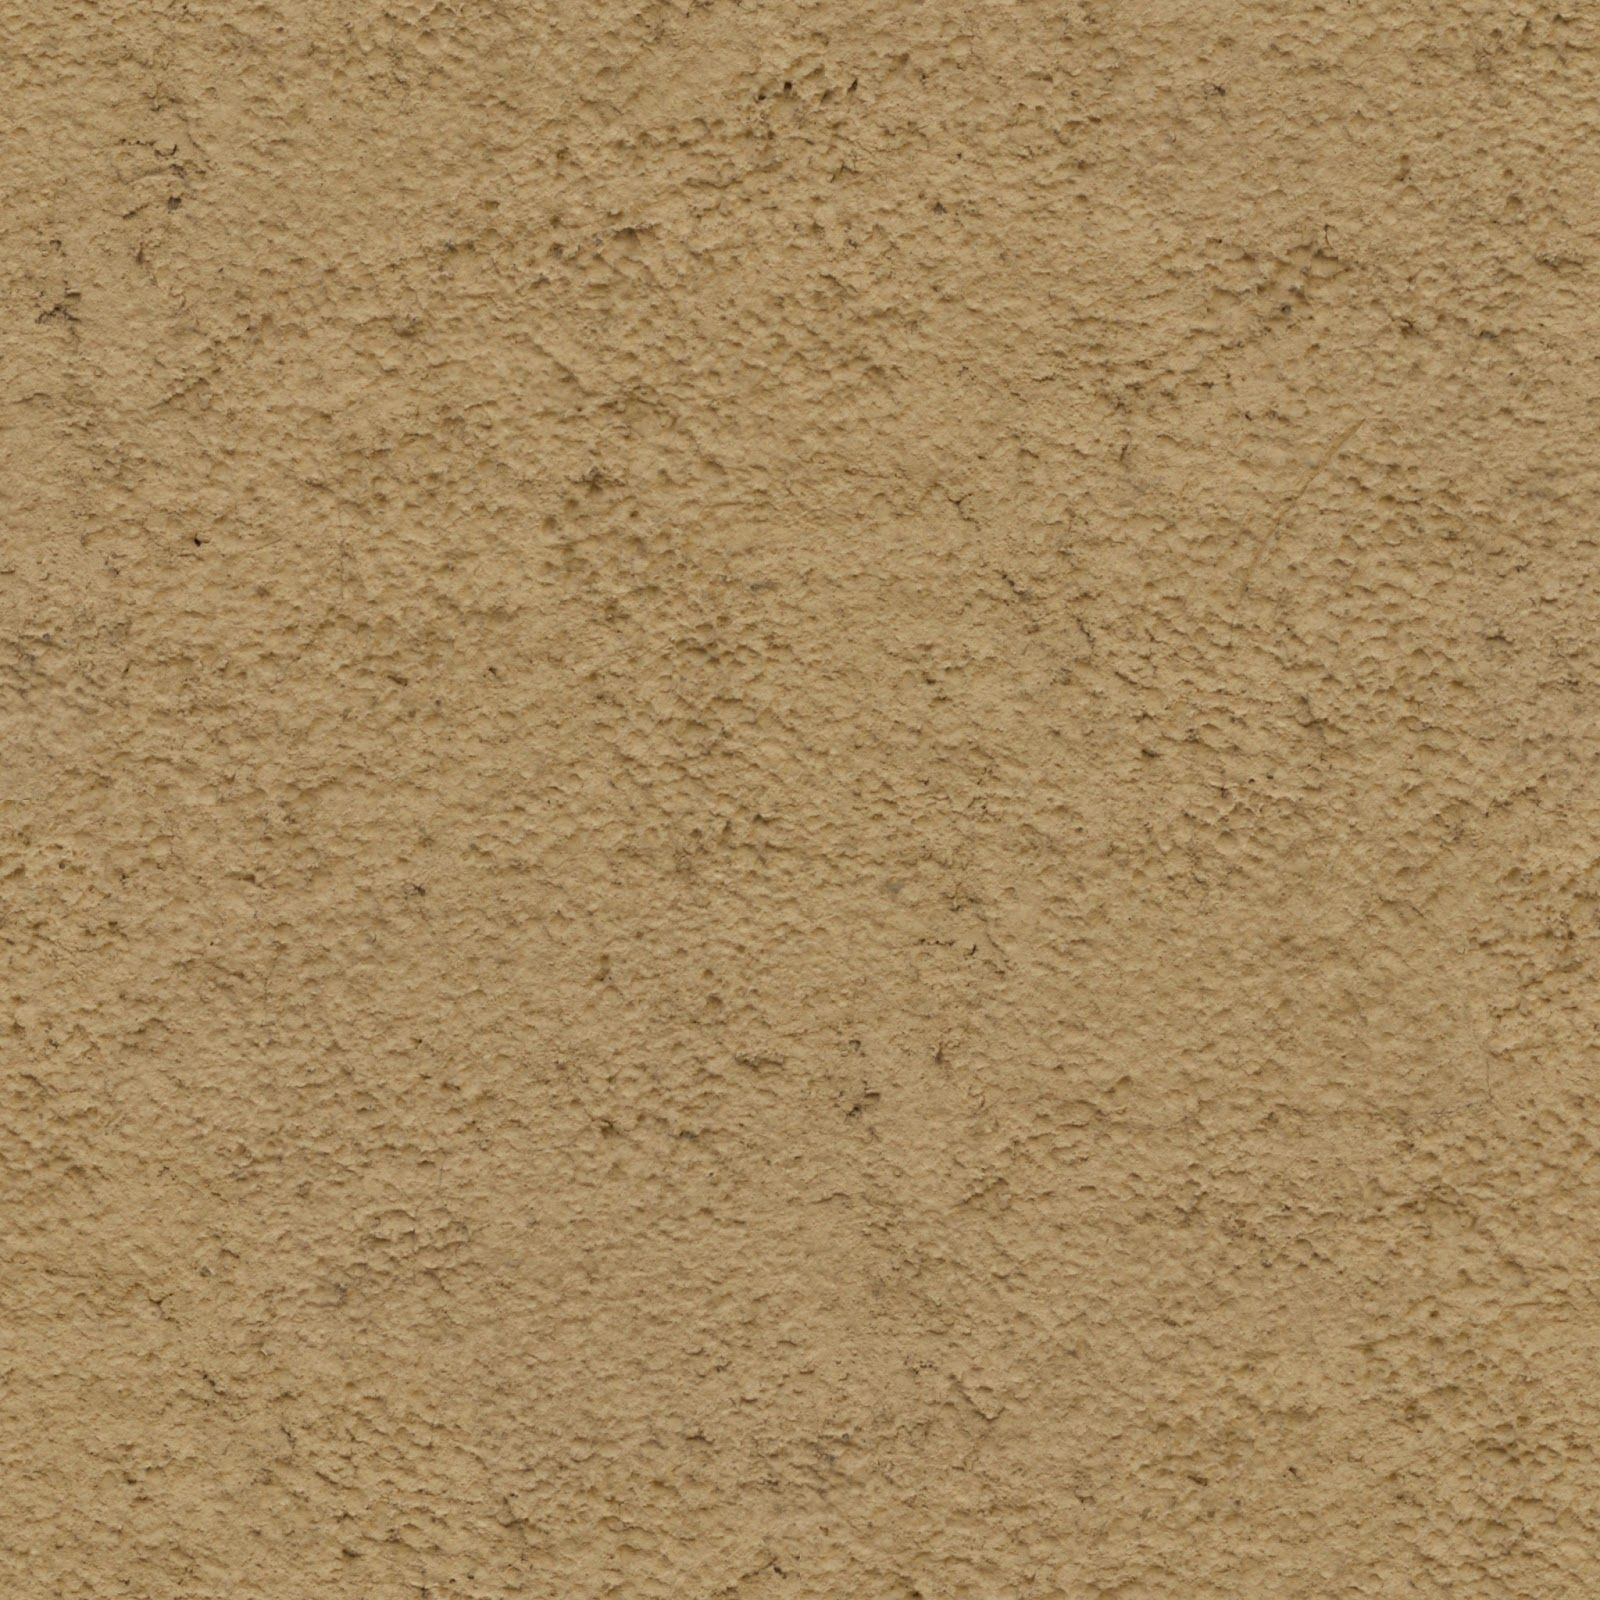 Stucco Dirty Rough Stucco Plaster Wall Paper Seamless